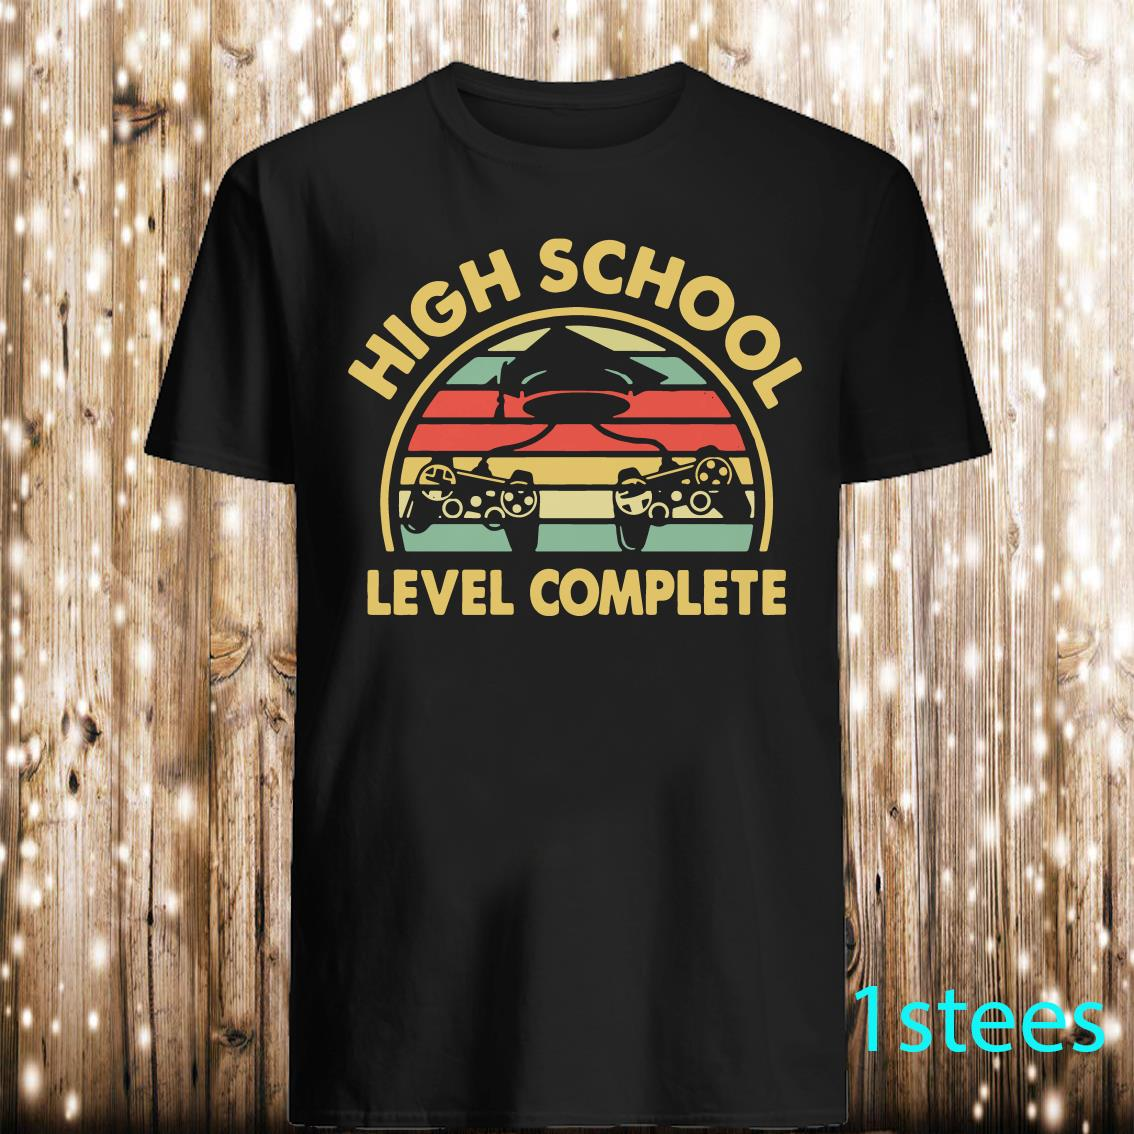 High School Level Complete Funny Gamer Graduate Shirt